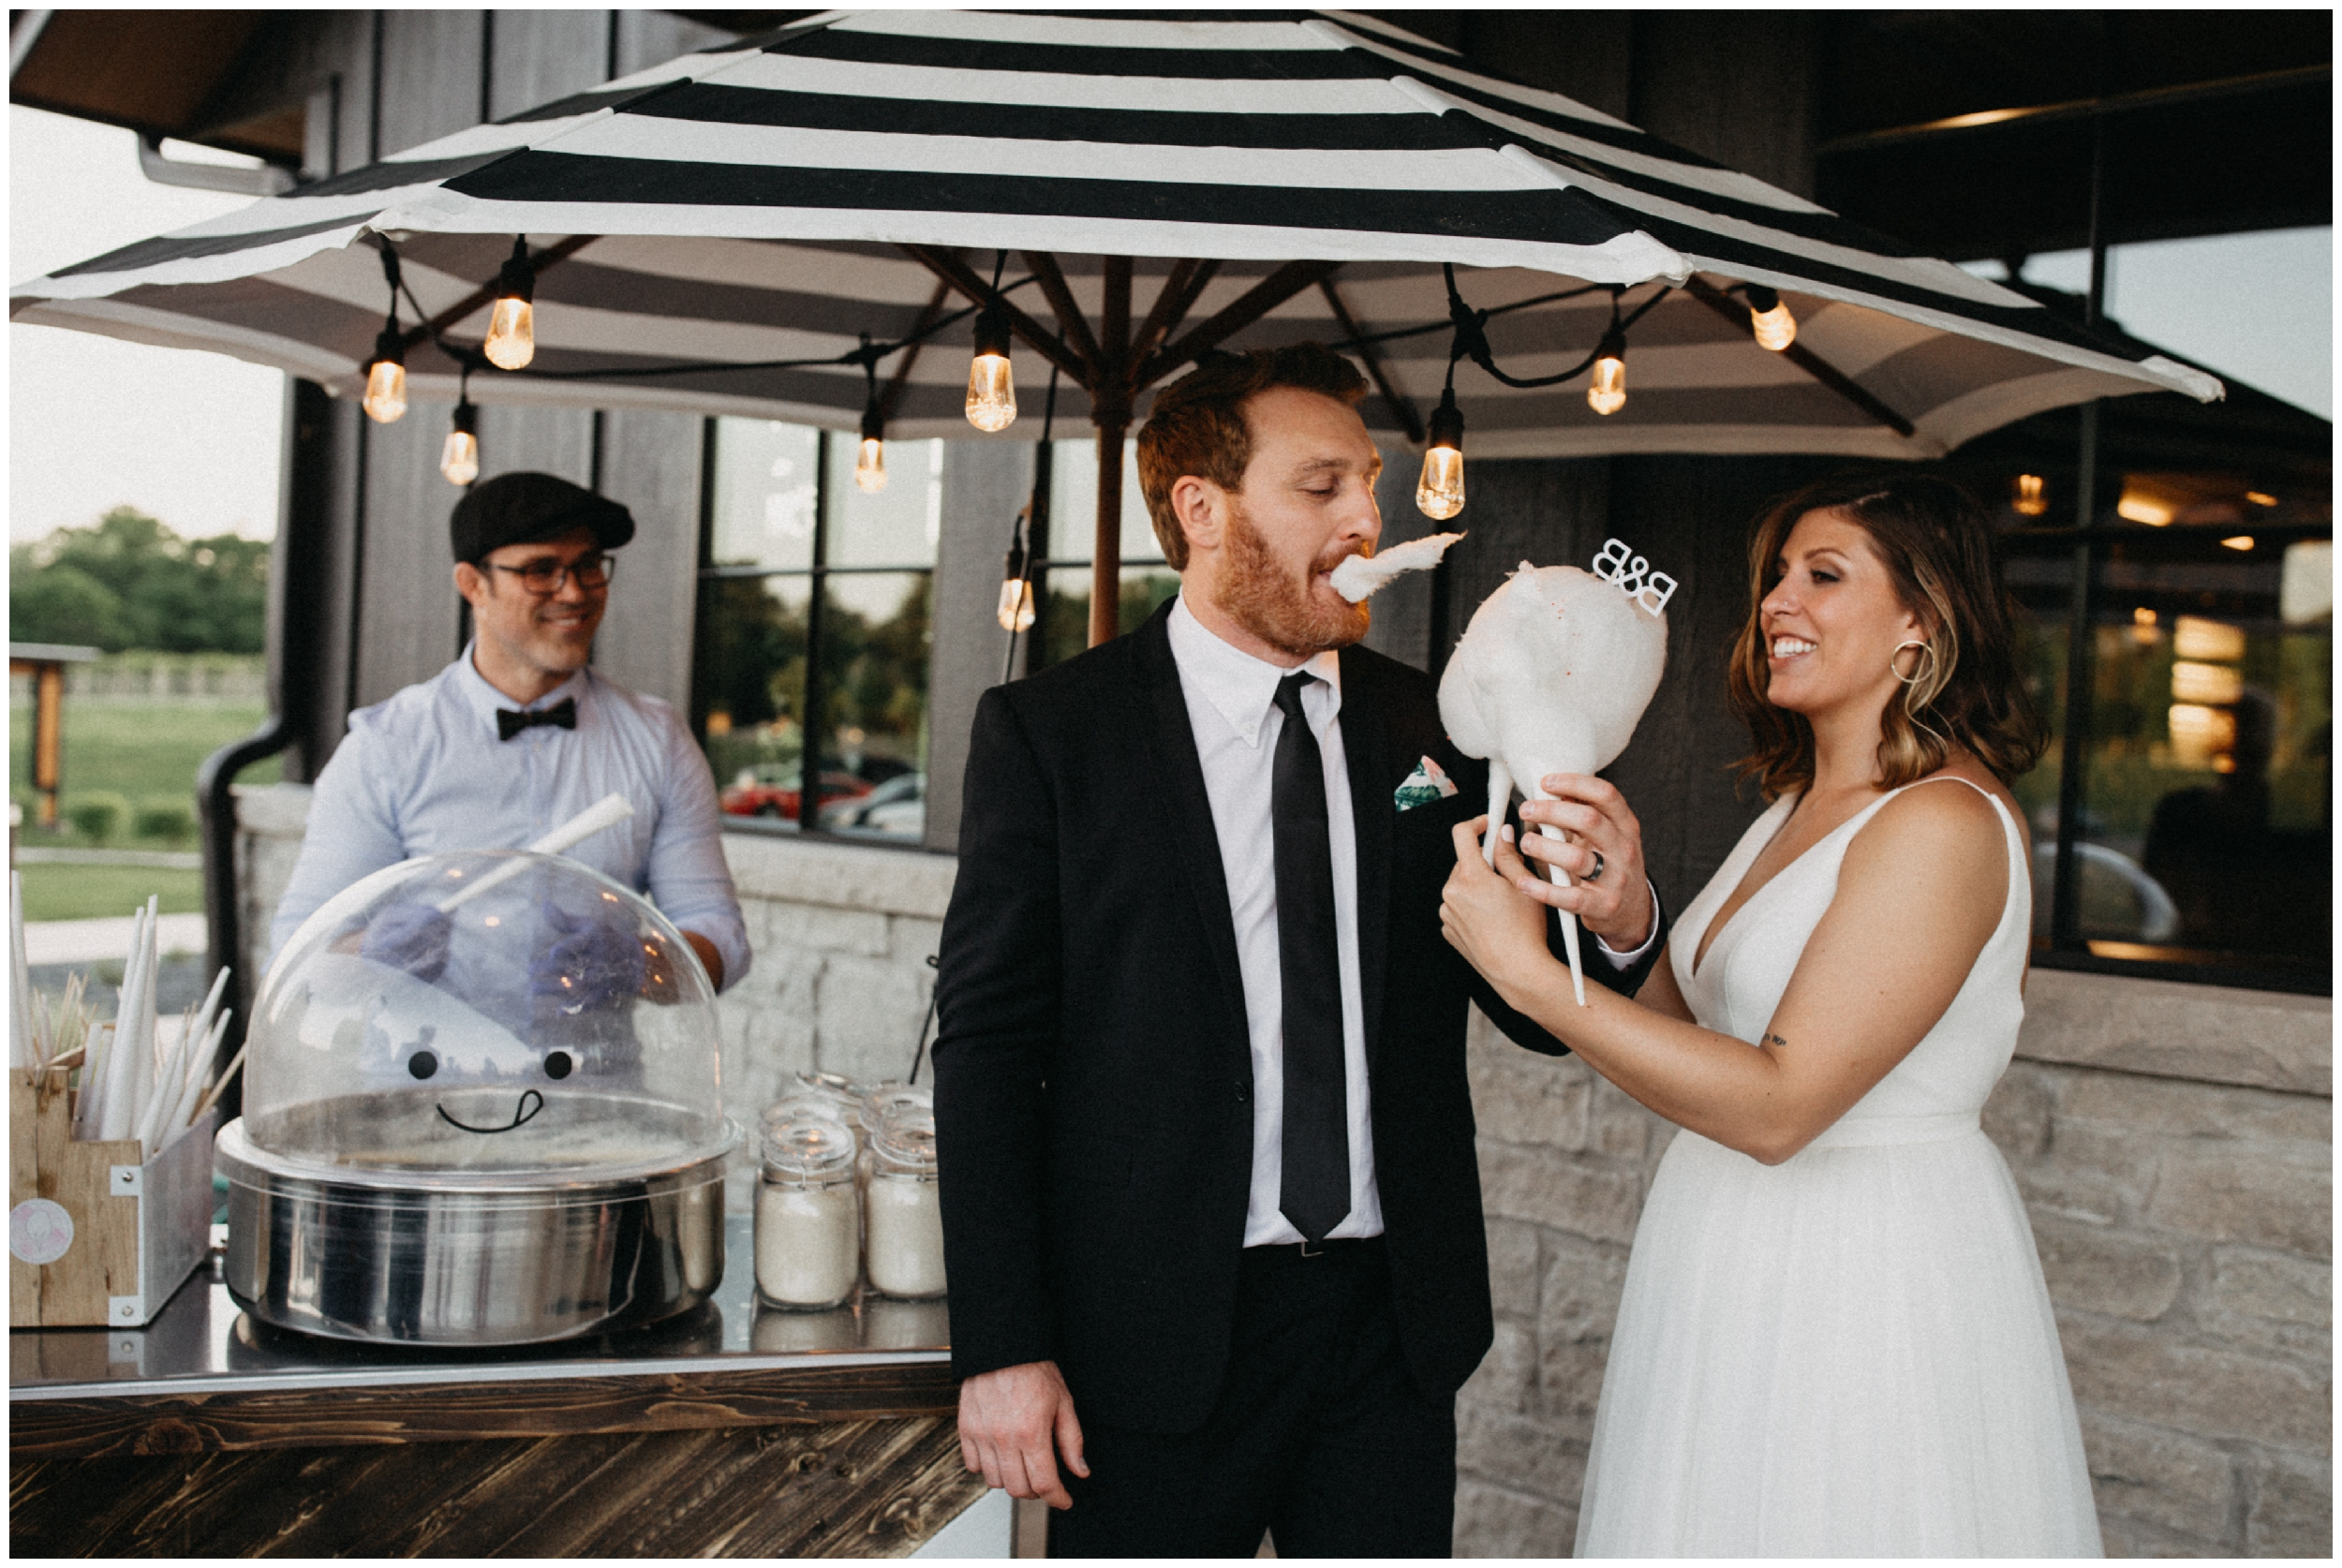 Spinning Wylde cotton candy cart at Minnesota wedding